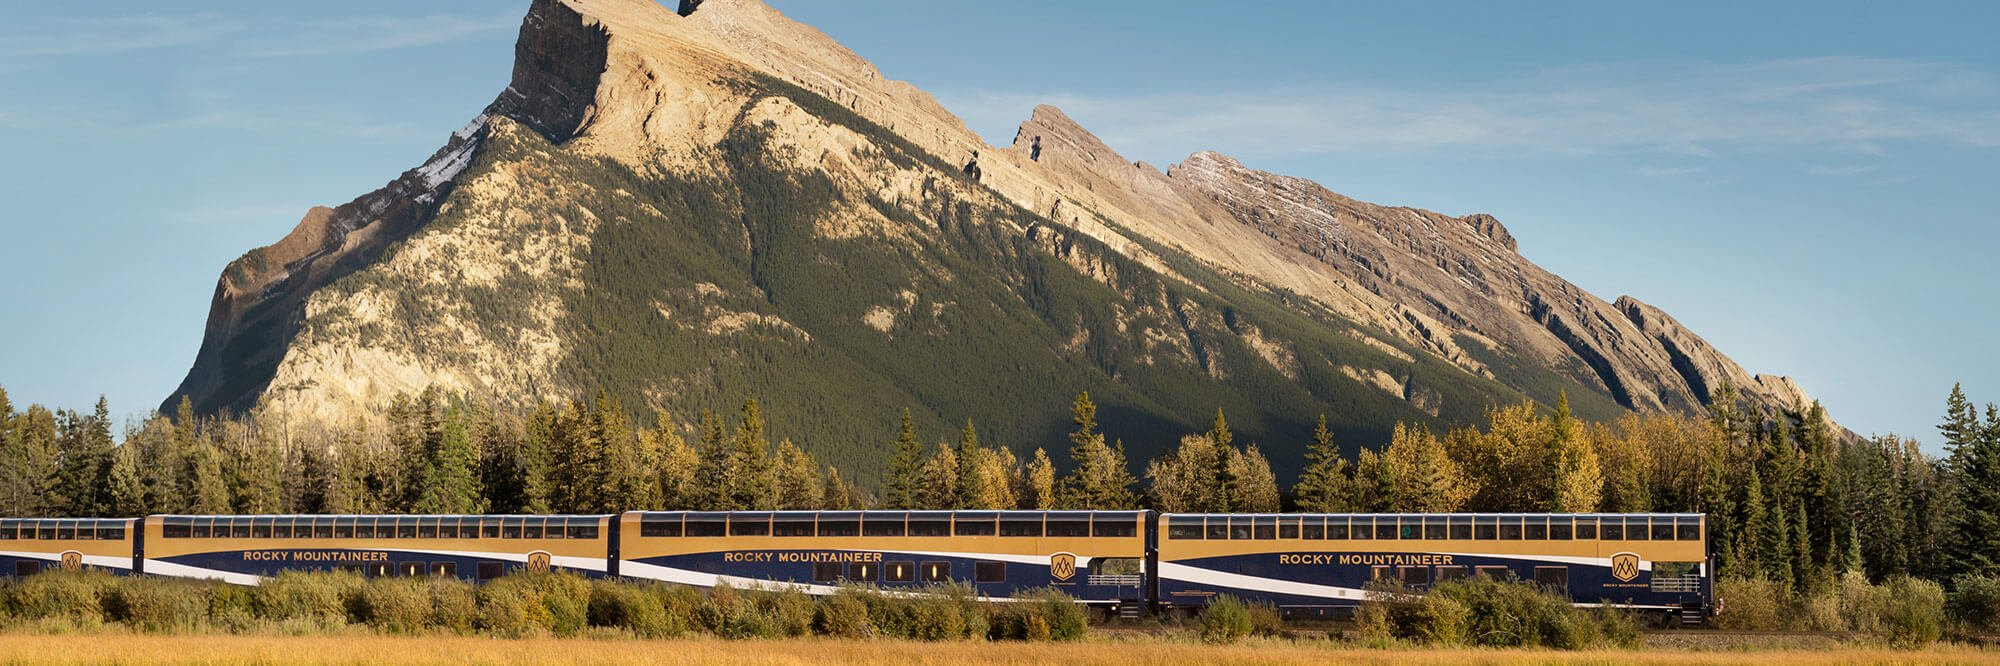 Rocky Mountaineer Train, Vermilion Lakes, Banff National Park